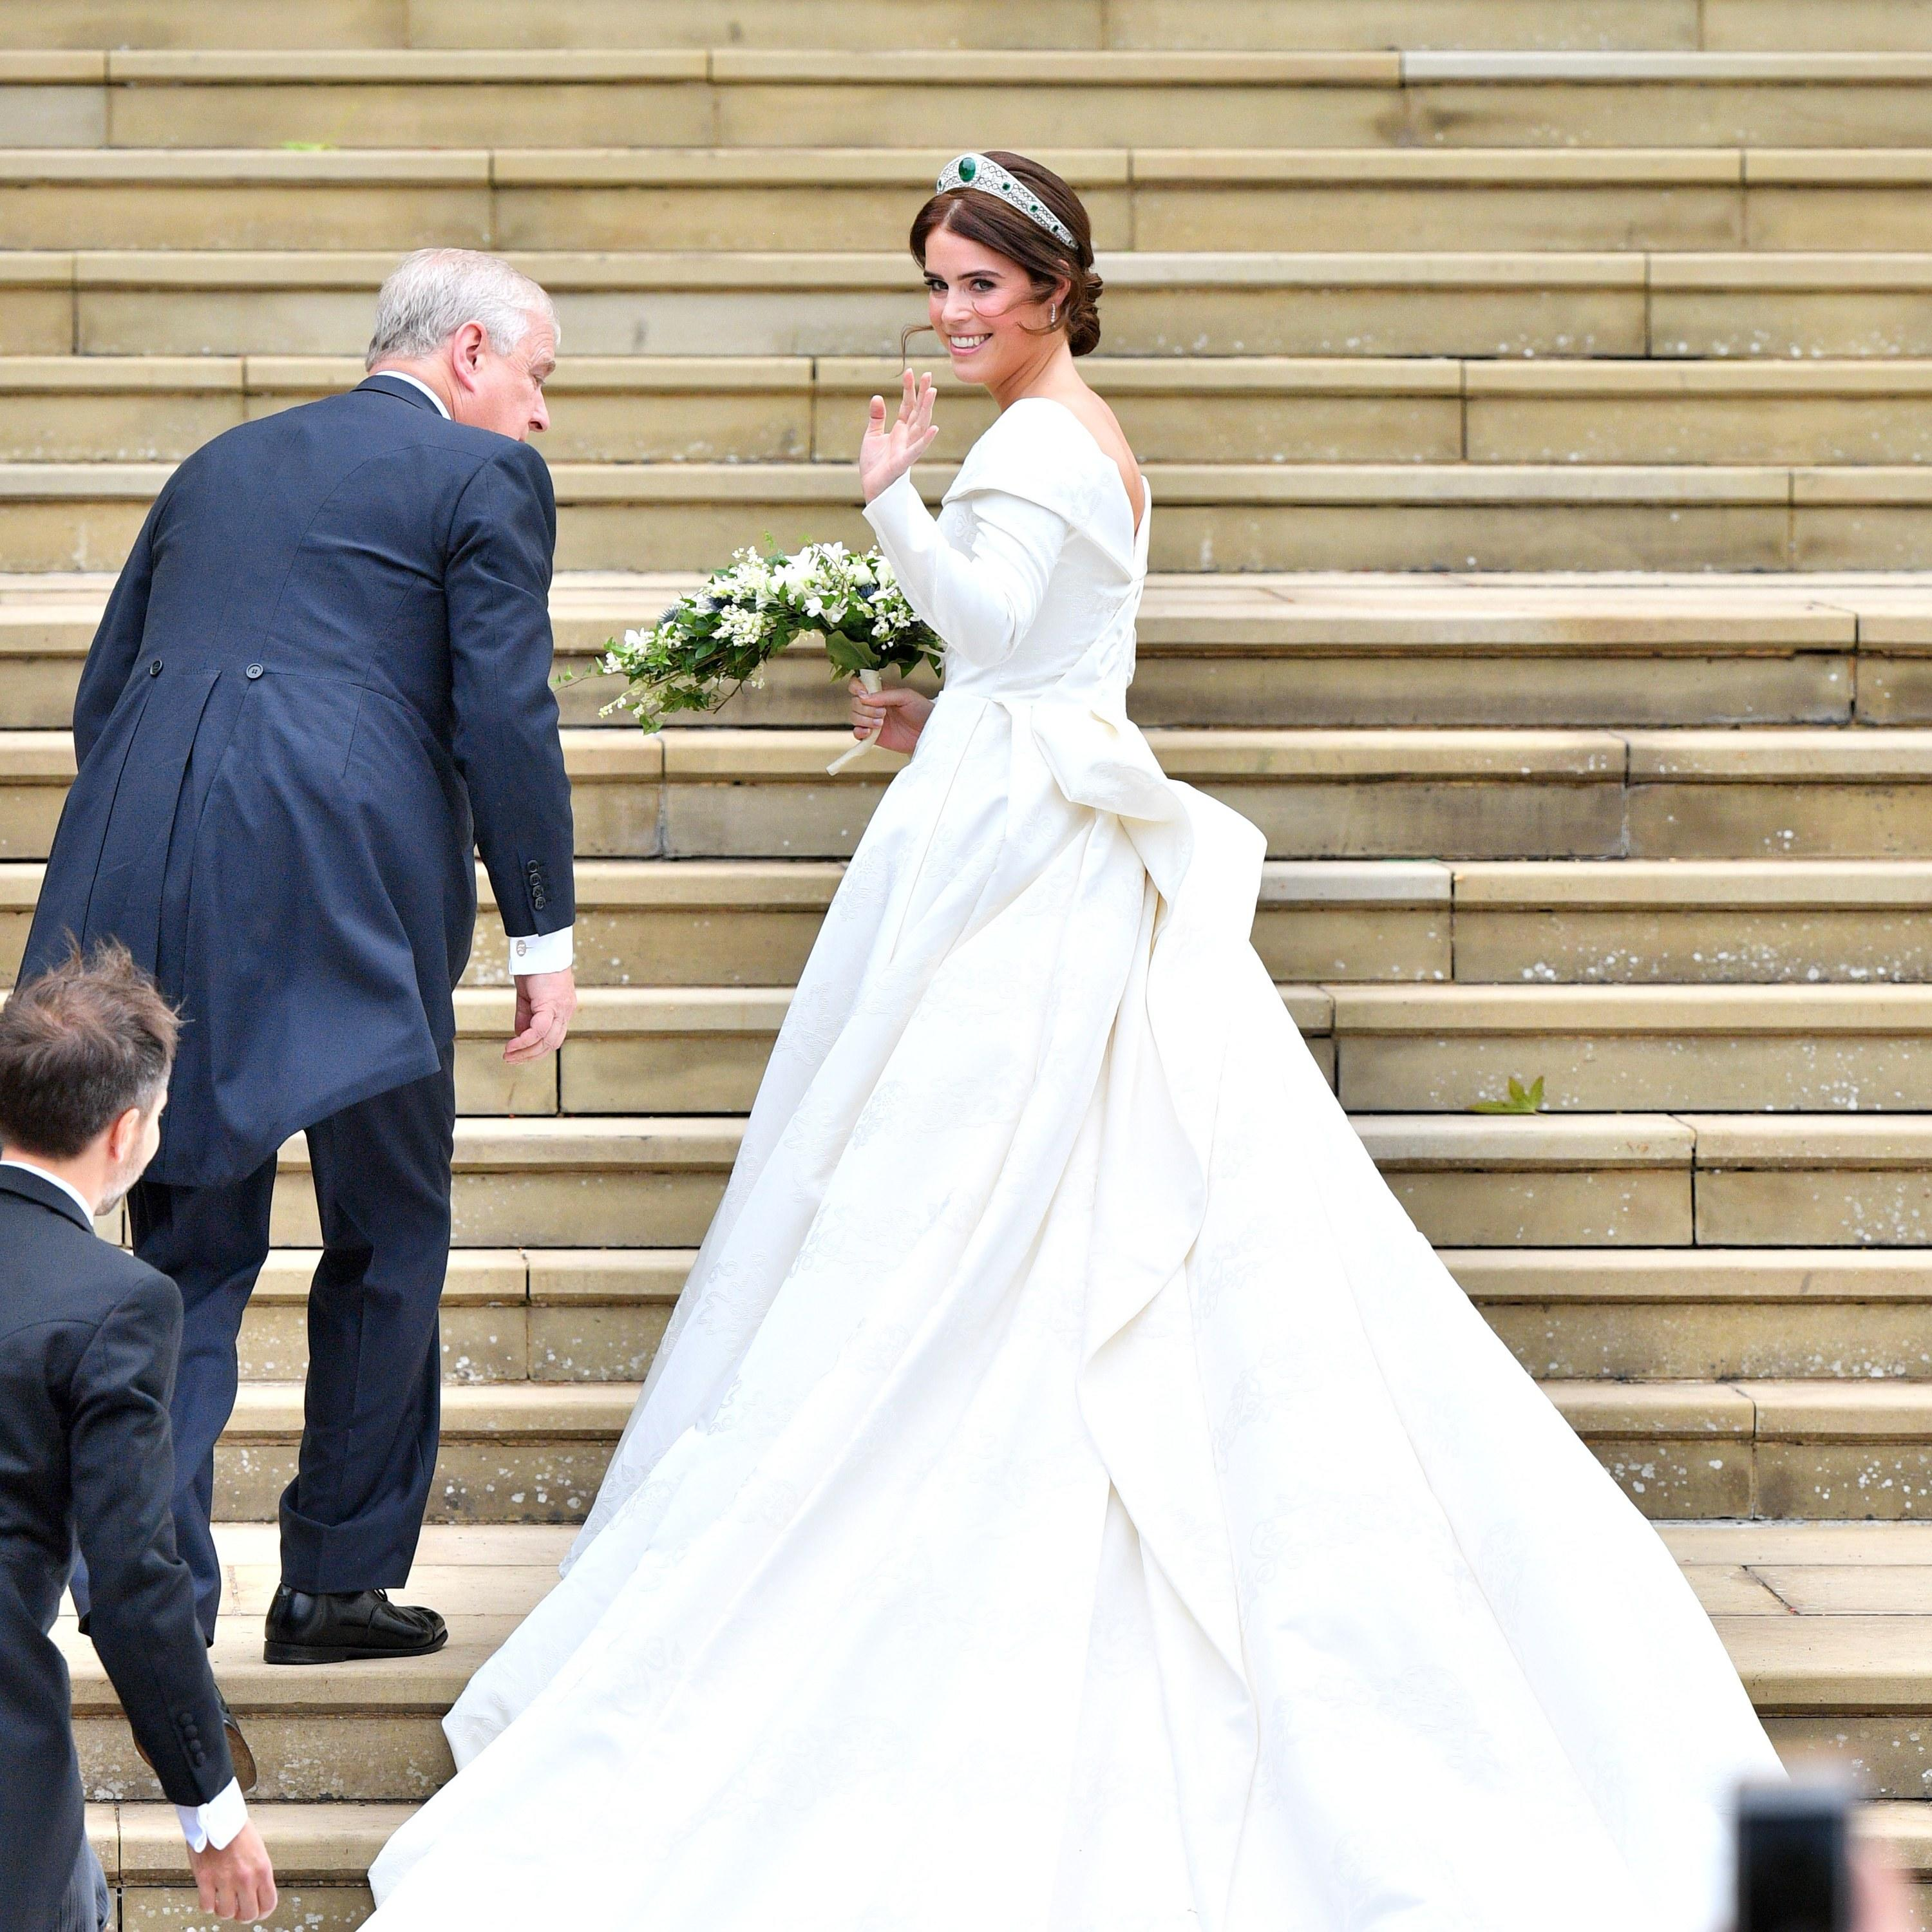 The Top 5 Moments From Princess Eugenie And Jack Brooksbanks Royal